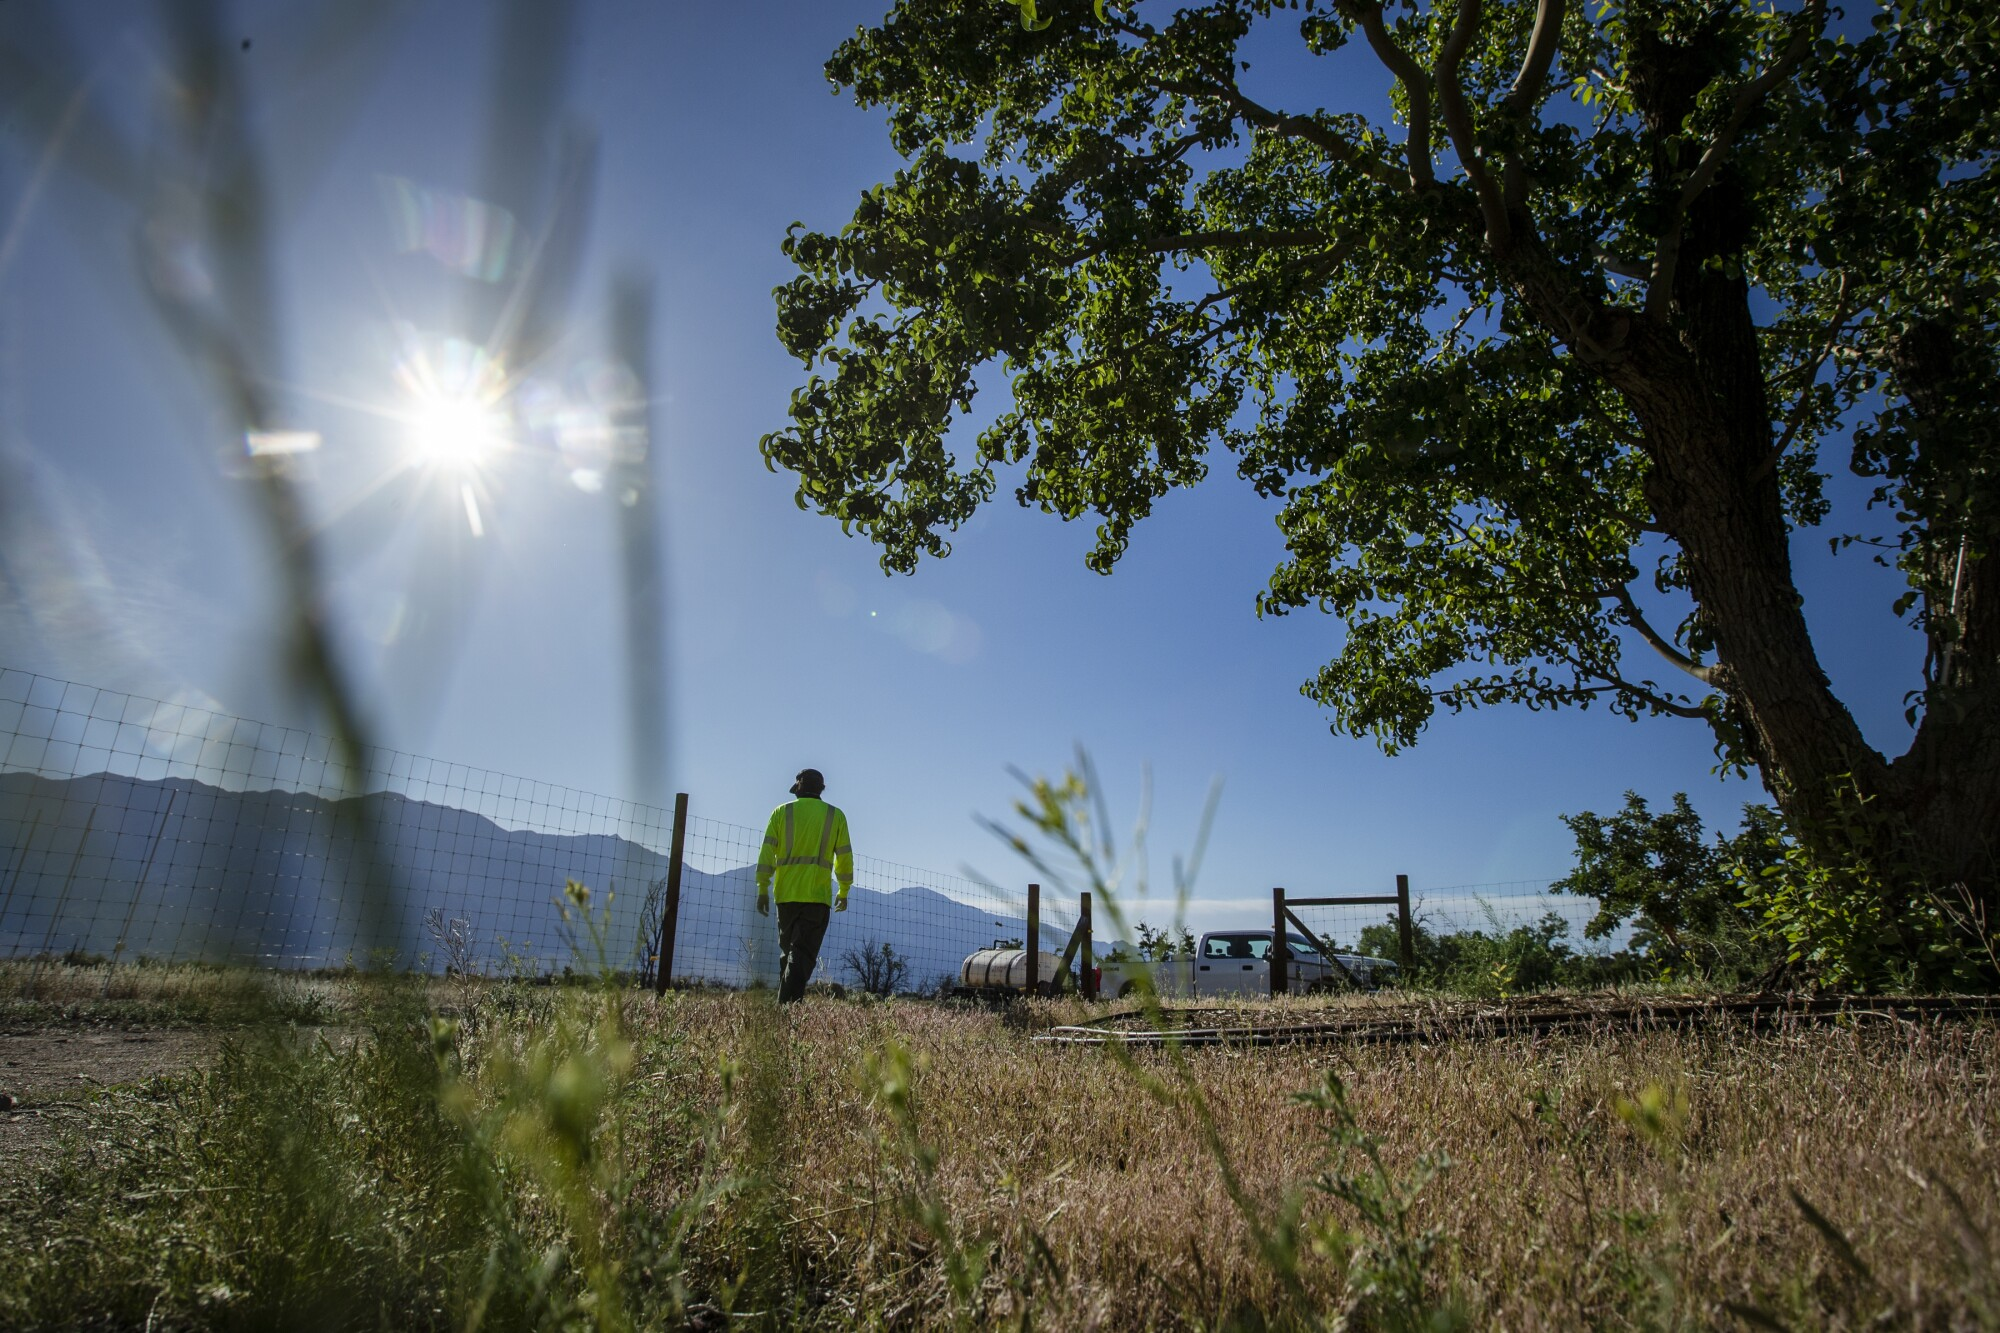 A man walks past a tree toward a work truck on the other side of a wire fence under bright sun with mountains in the distance